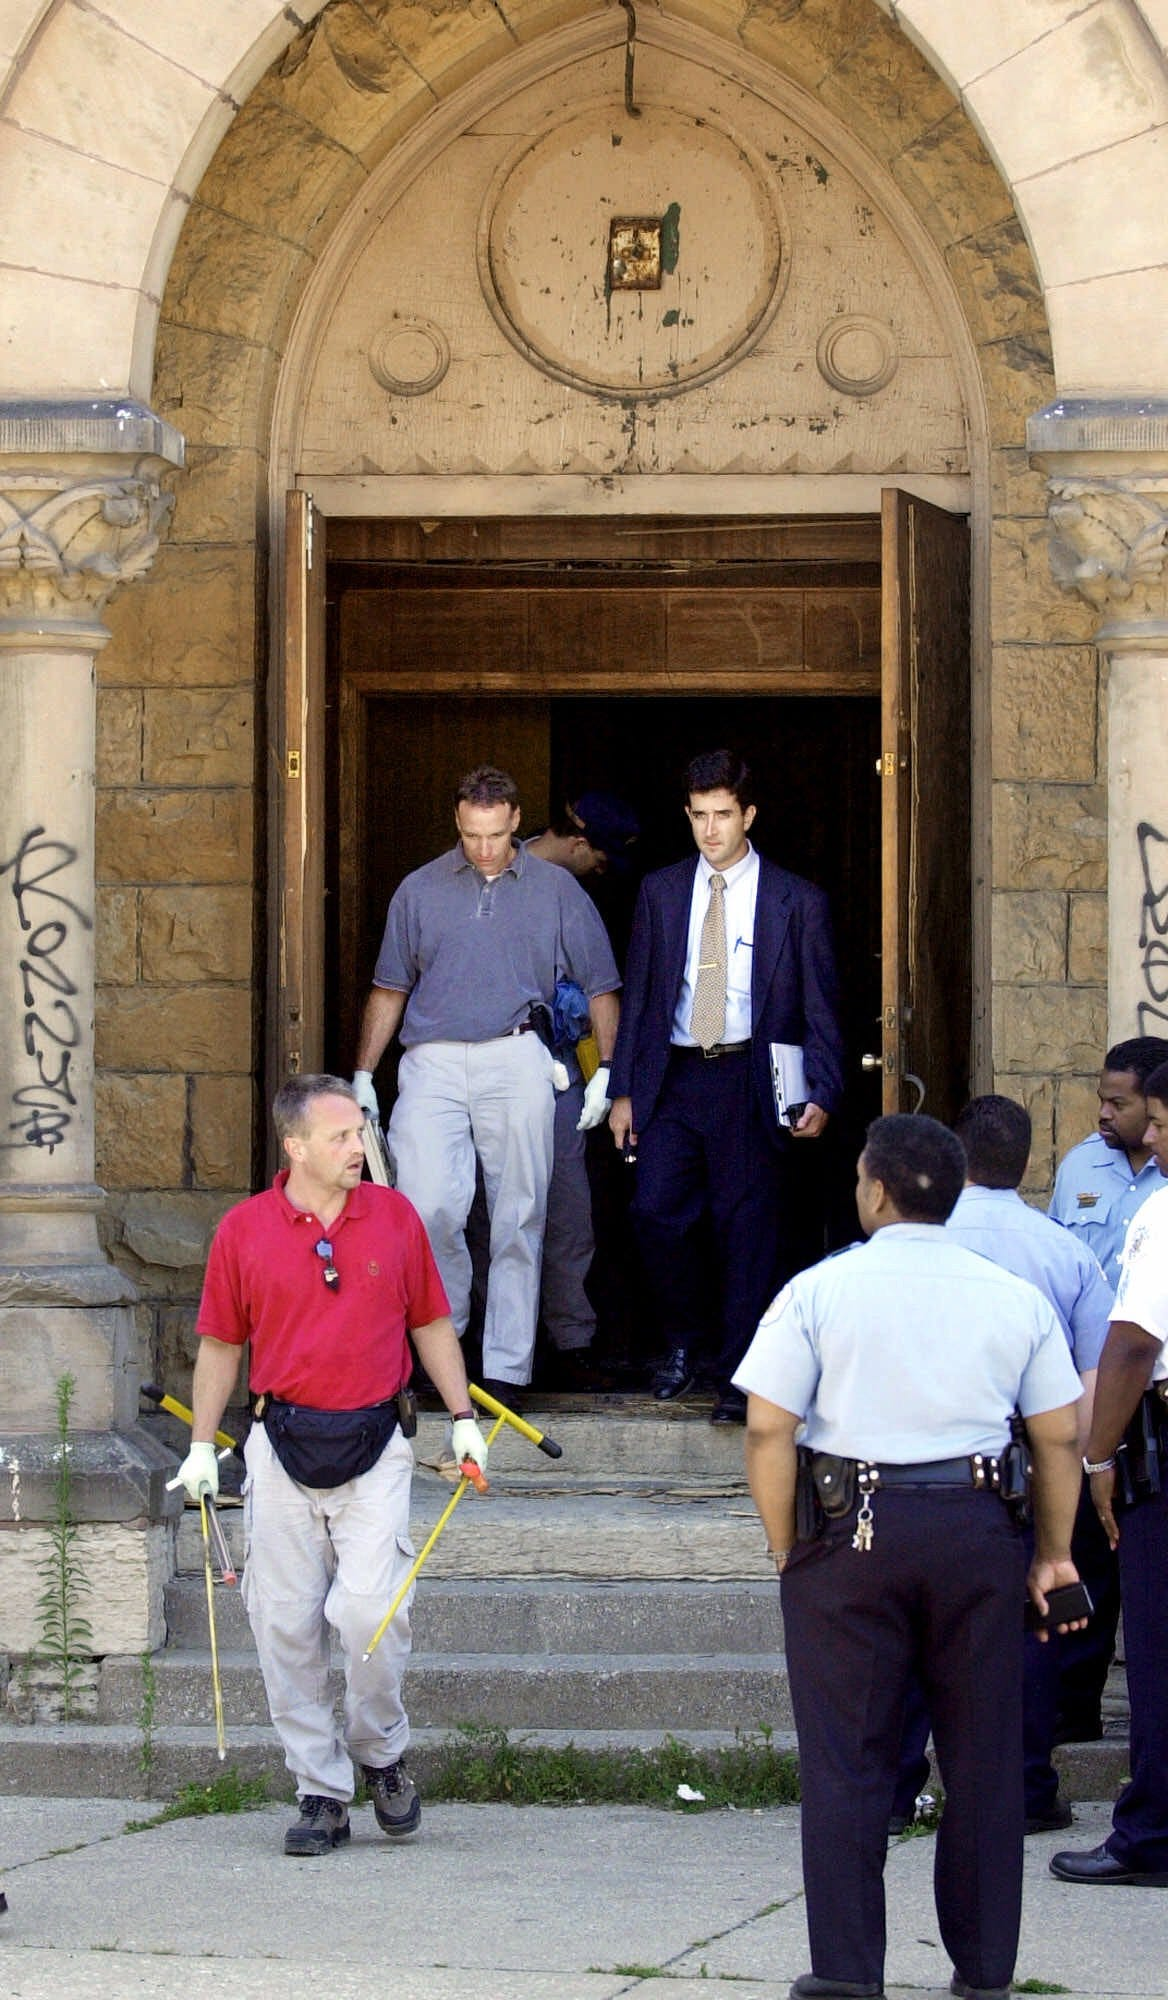 FBI and Chicago Police officials leave an abandoned church Friday, July 13, 2001, after searching the basement for sisters Tionda, 10, and Diamond Bradley, 3, who had been missing for a week. The search turned up nothing.